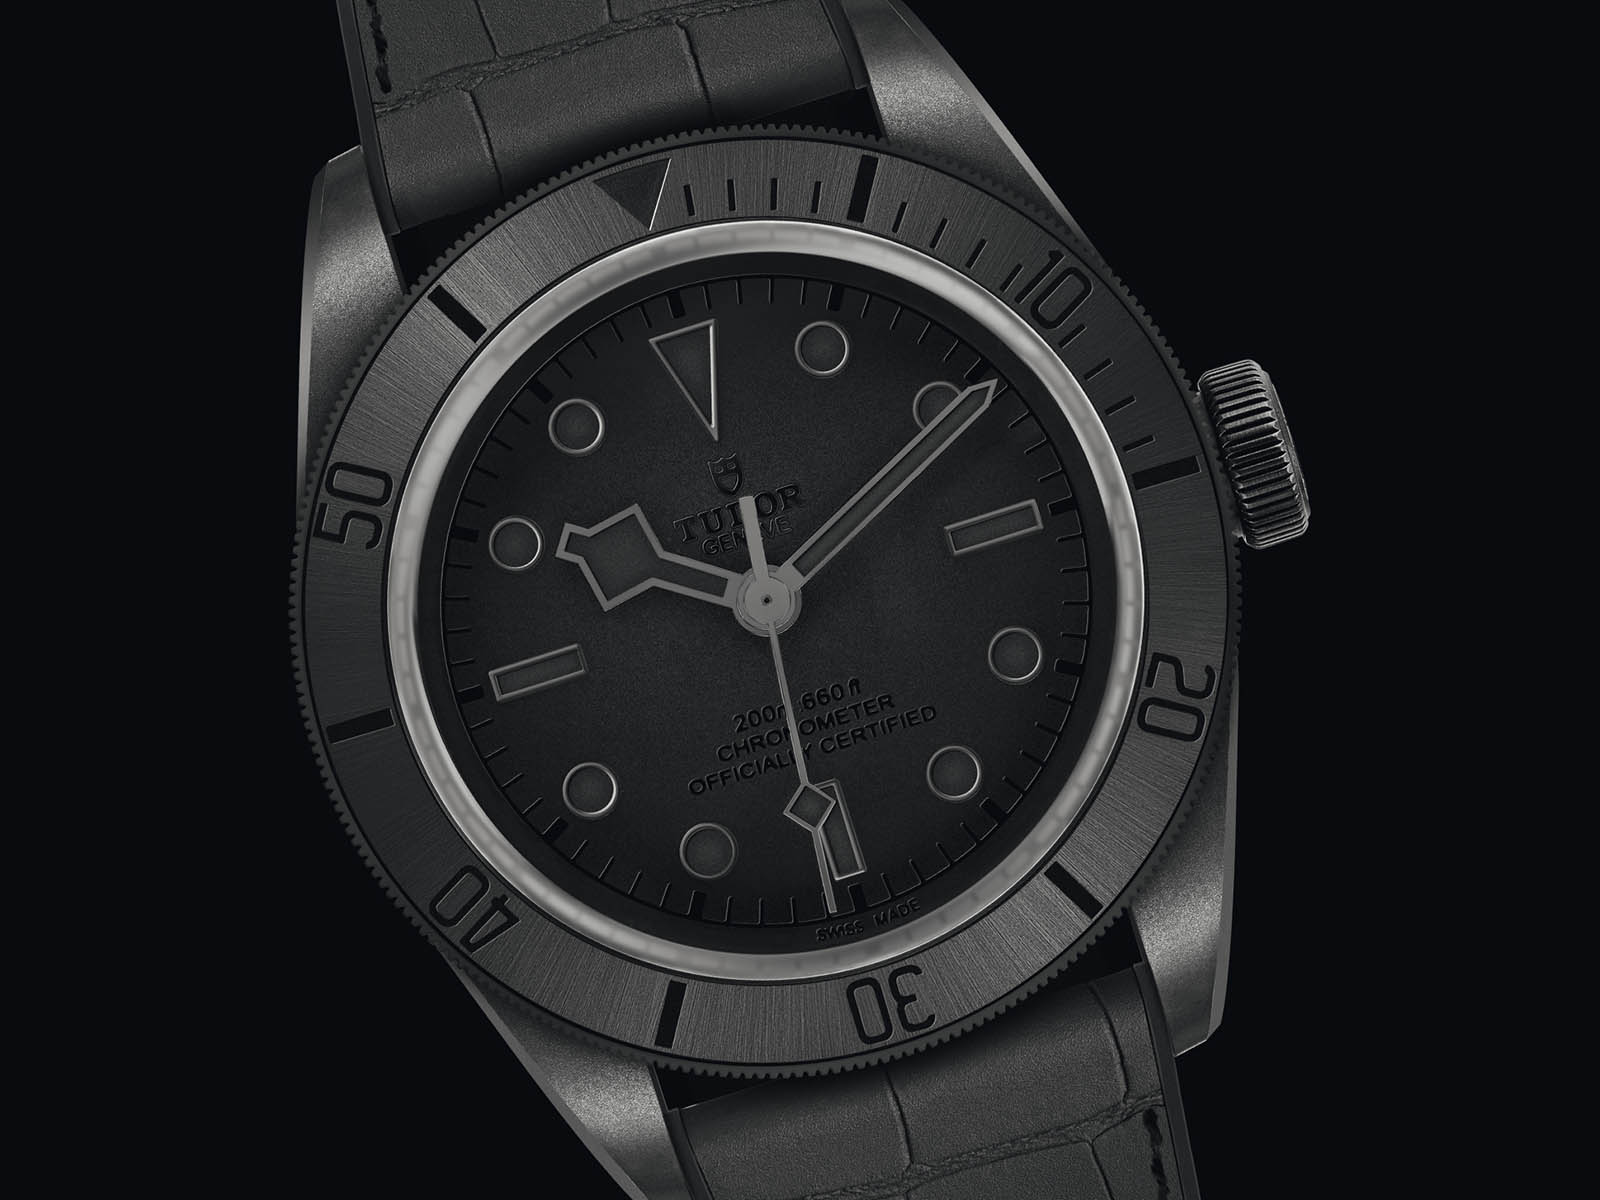 m7921-001cn-tudor-black-bay-ceramic-one-2.jpg